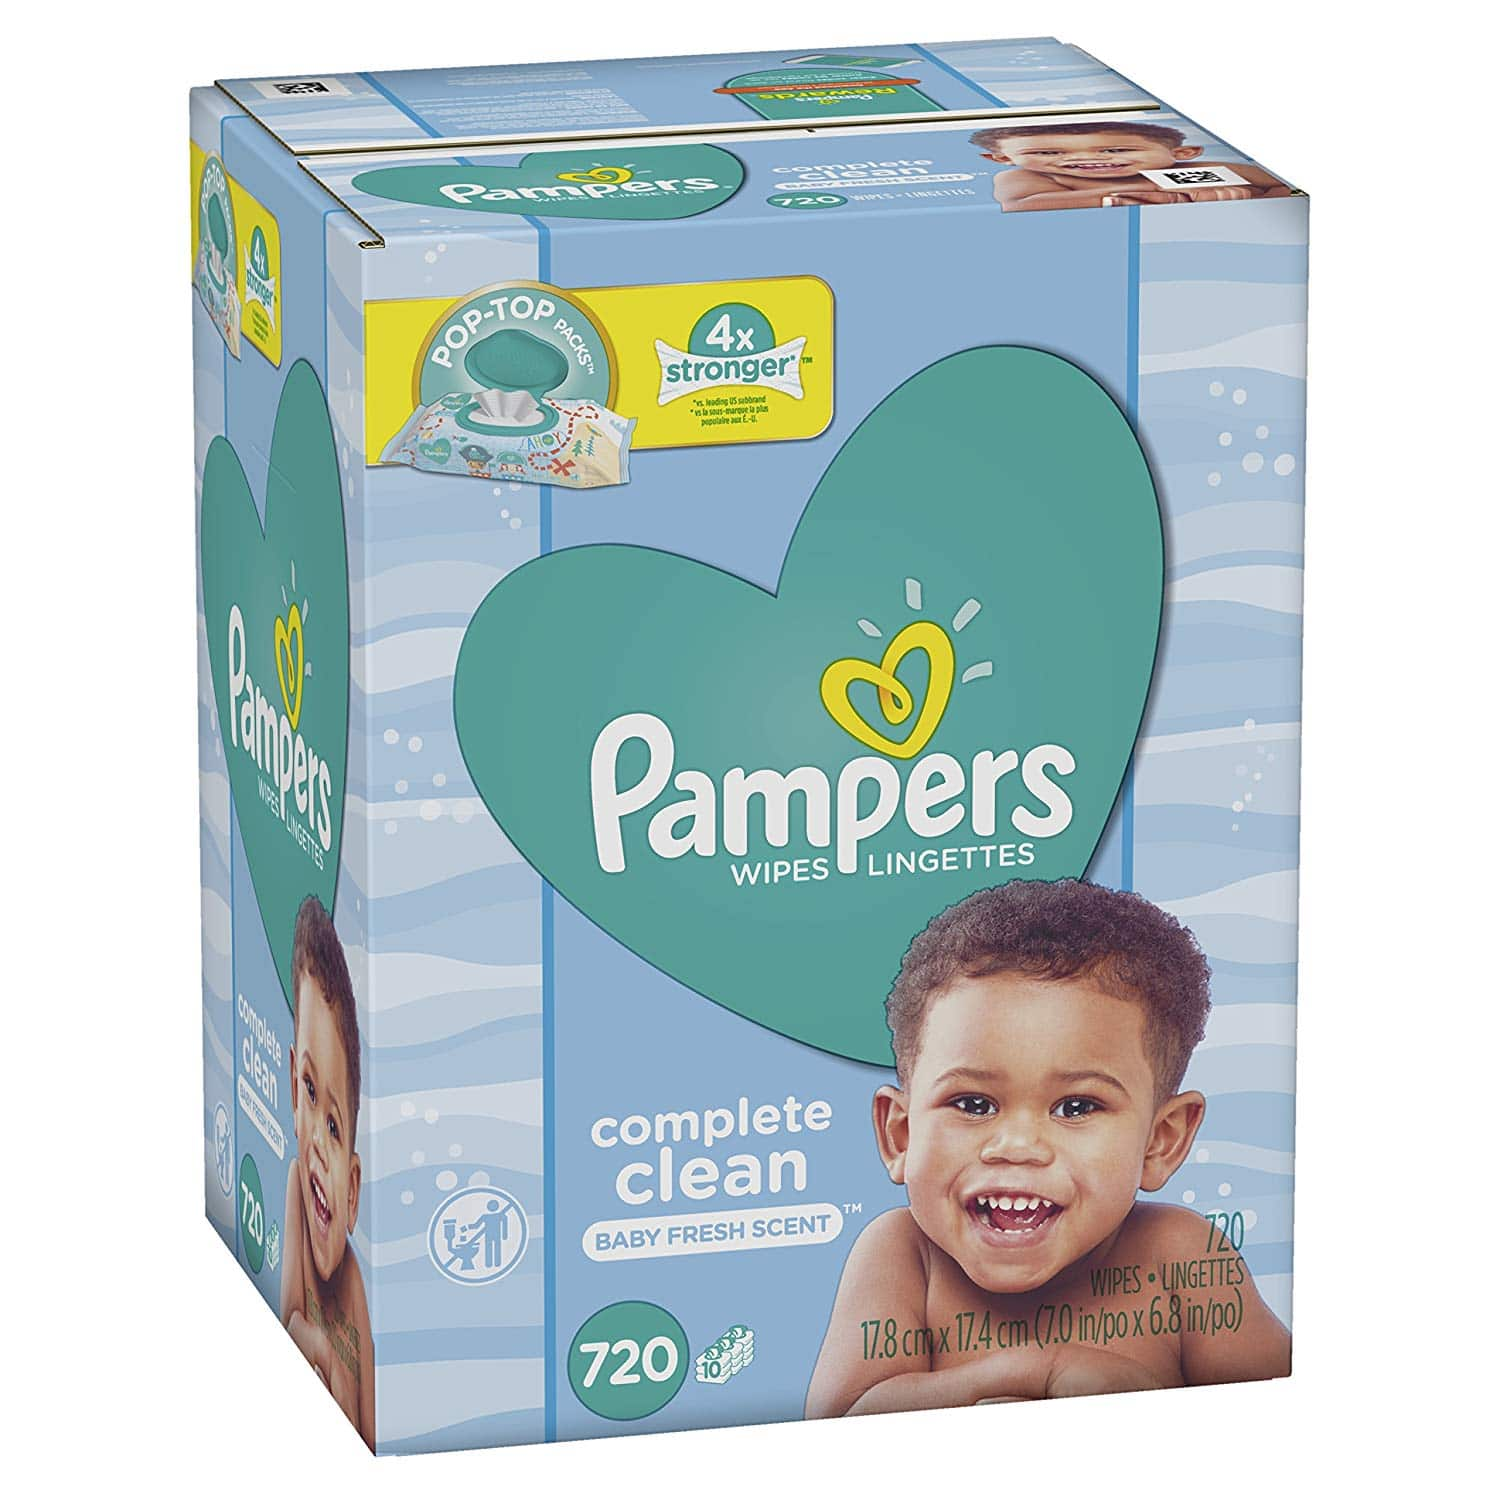 1440-Count Pampers Baby Wipes Complete Clean Scented 10X Pop-Top Packs, 720 Count Pack of 2 $19.57